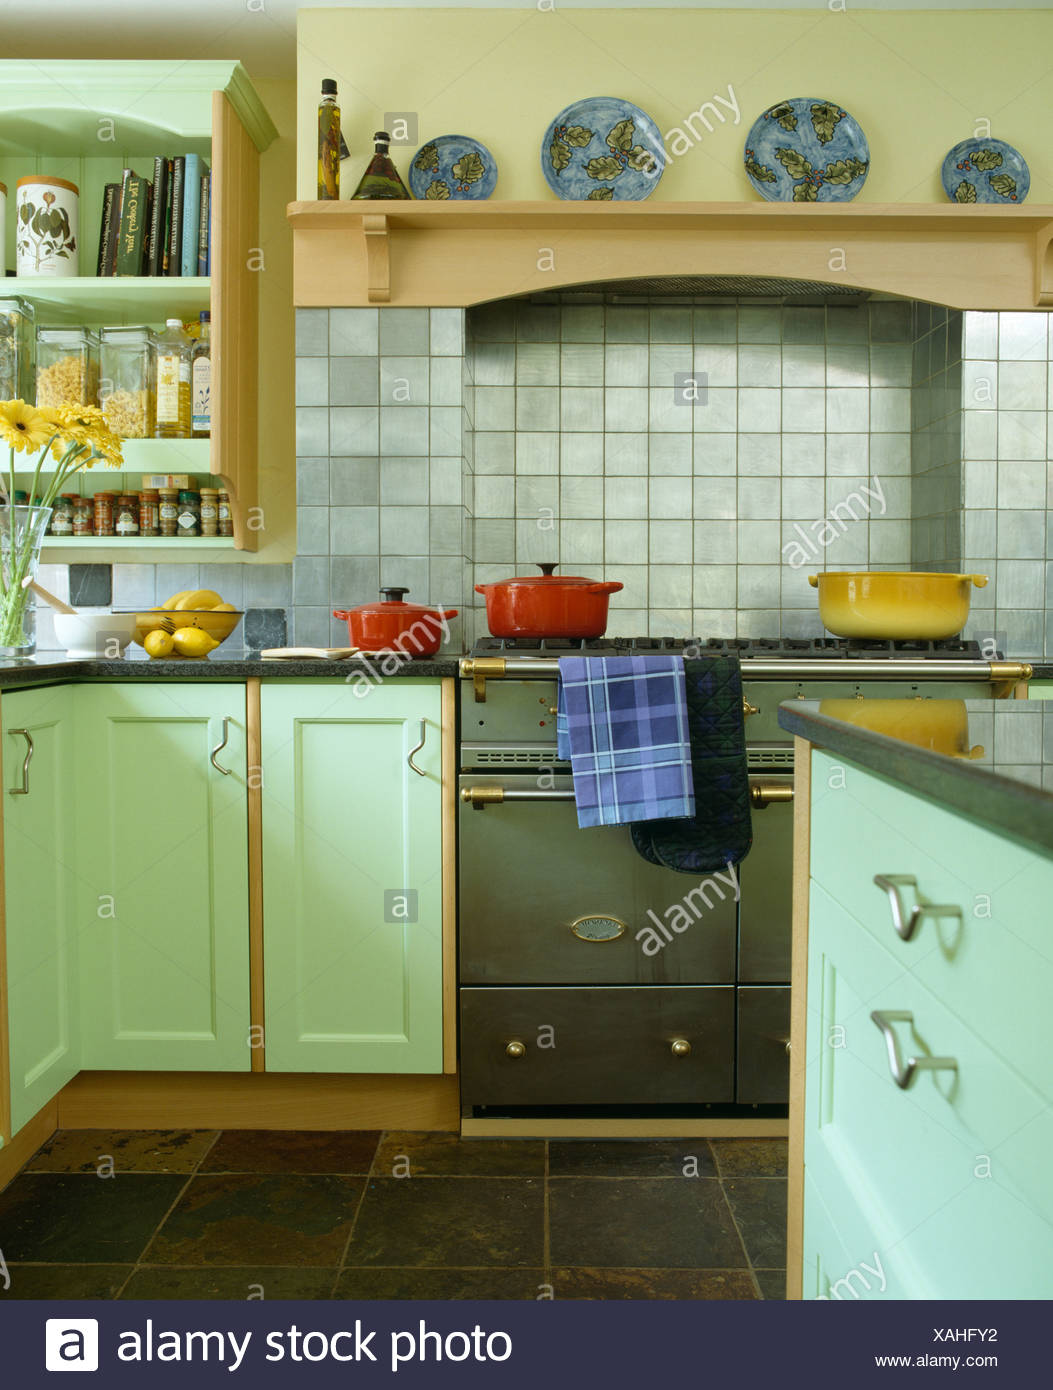 Kitchen Pastel Pastels Stockfotos & Kitchen Pastel Pastels Bilder ...